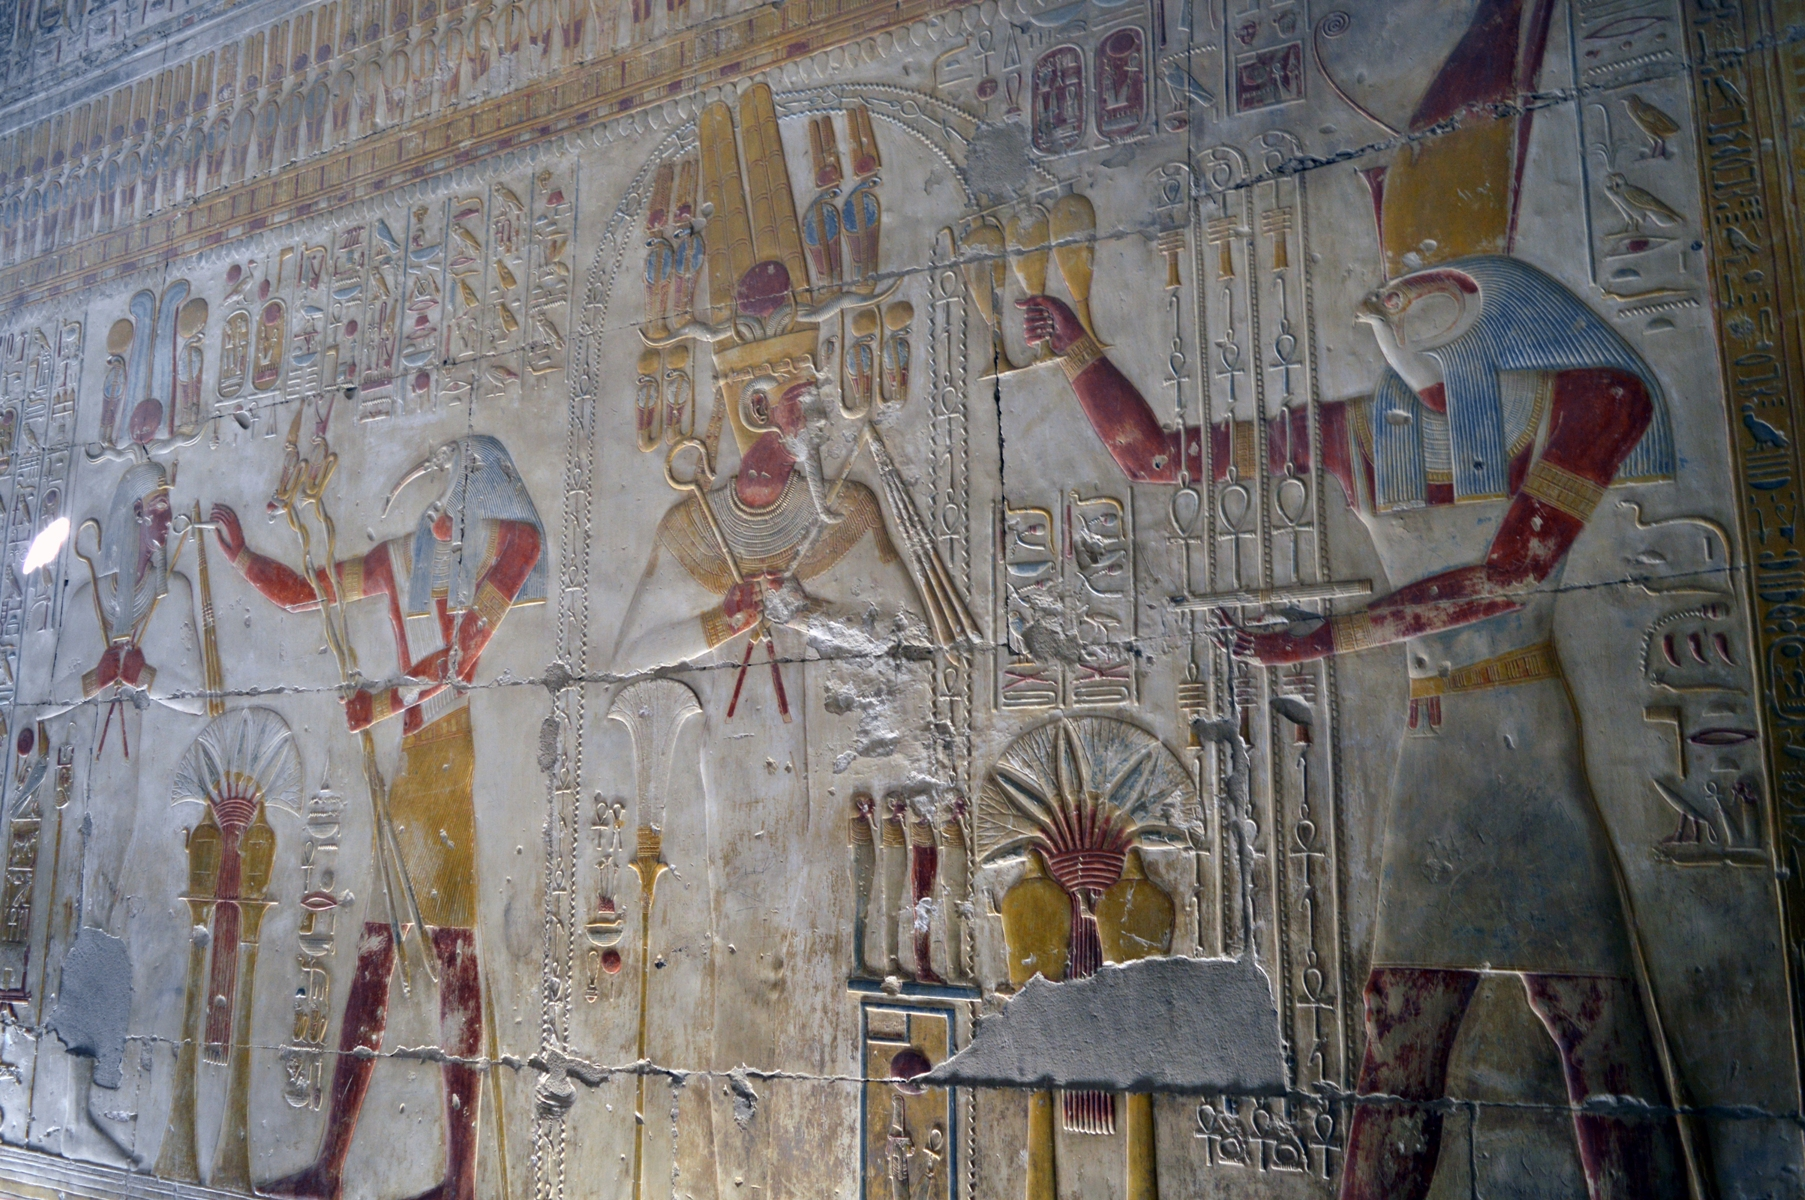 The ancient Egyptian deities